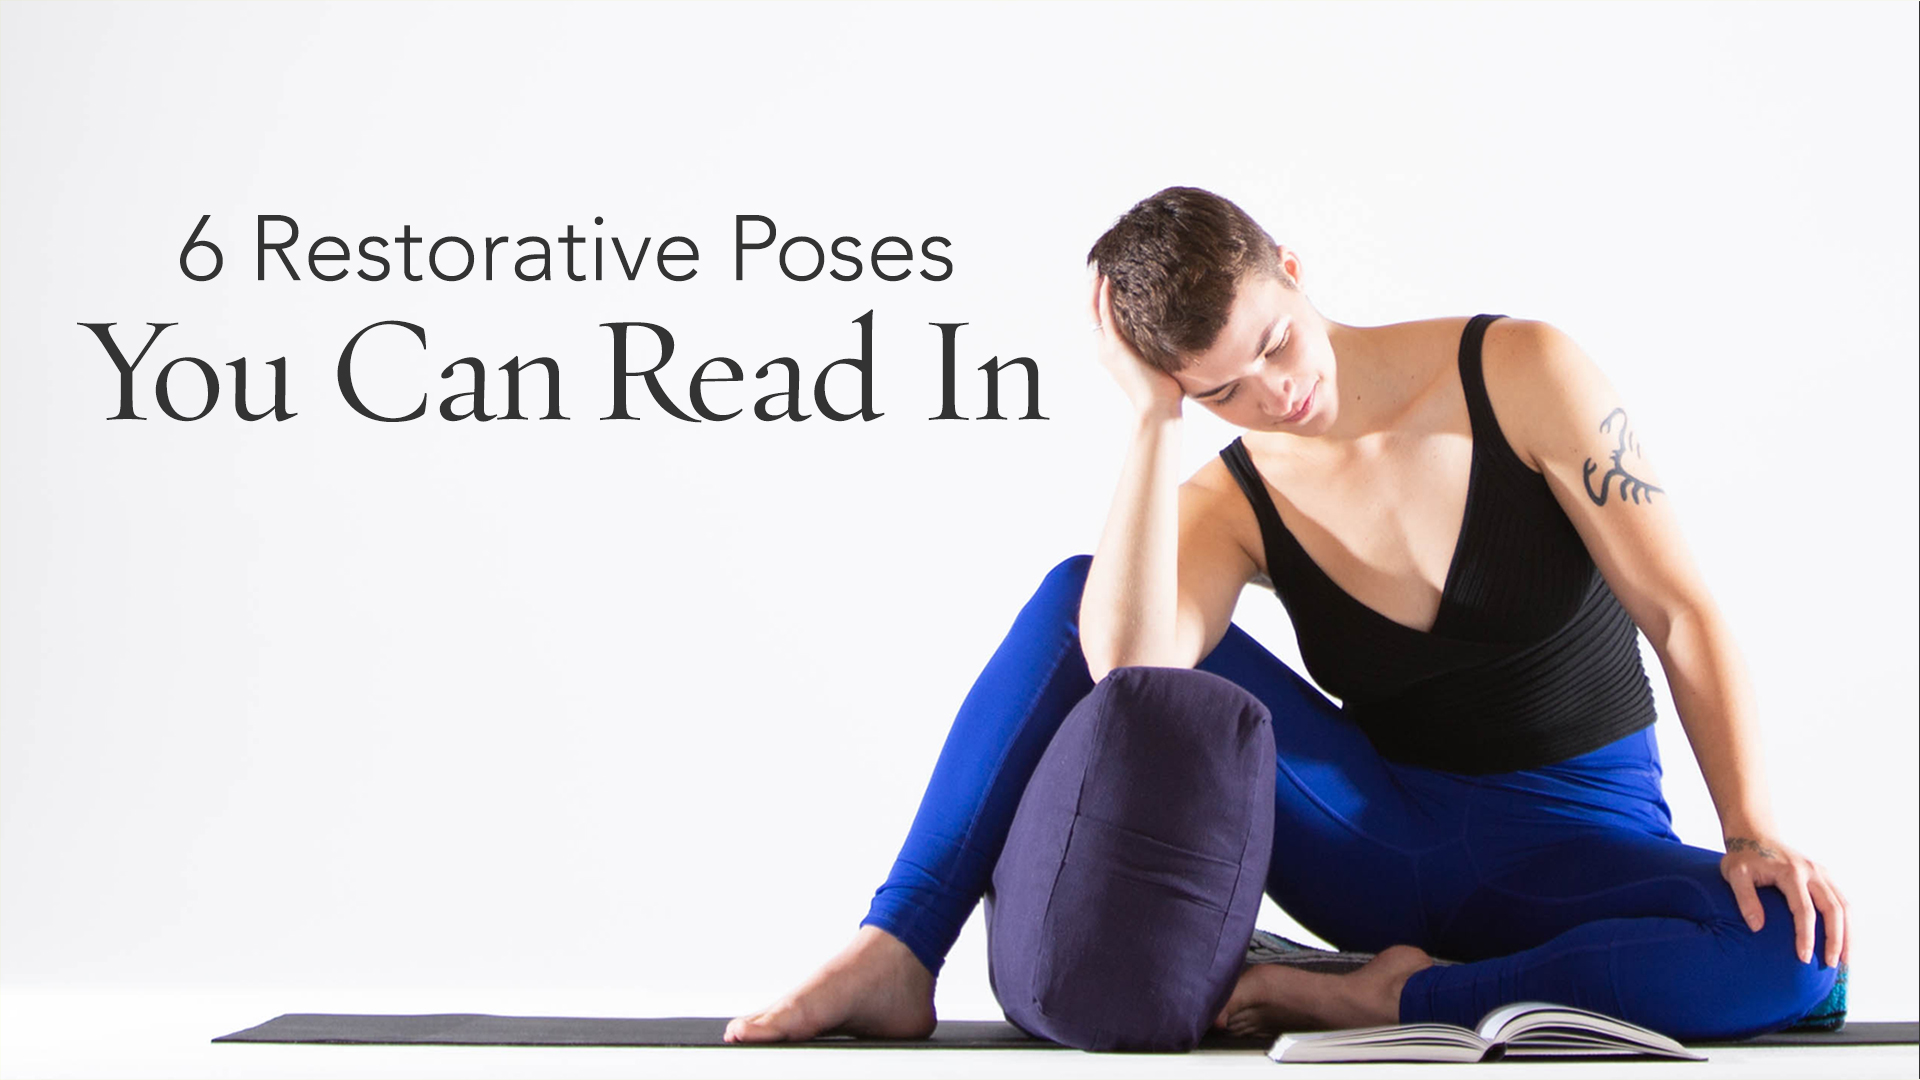 6 Restorative Poses You Can Read In | Yoga International